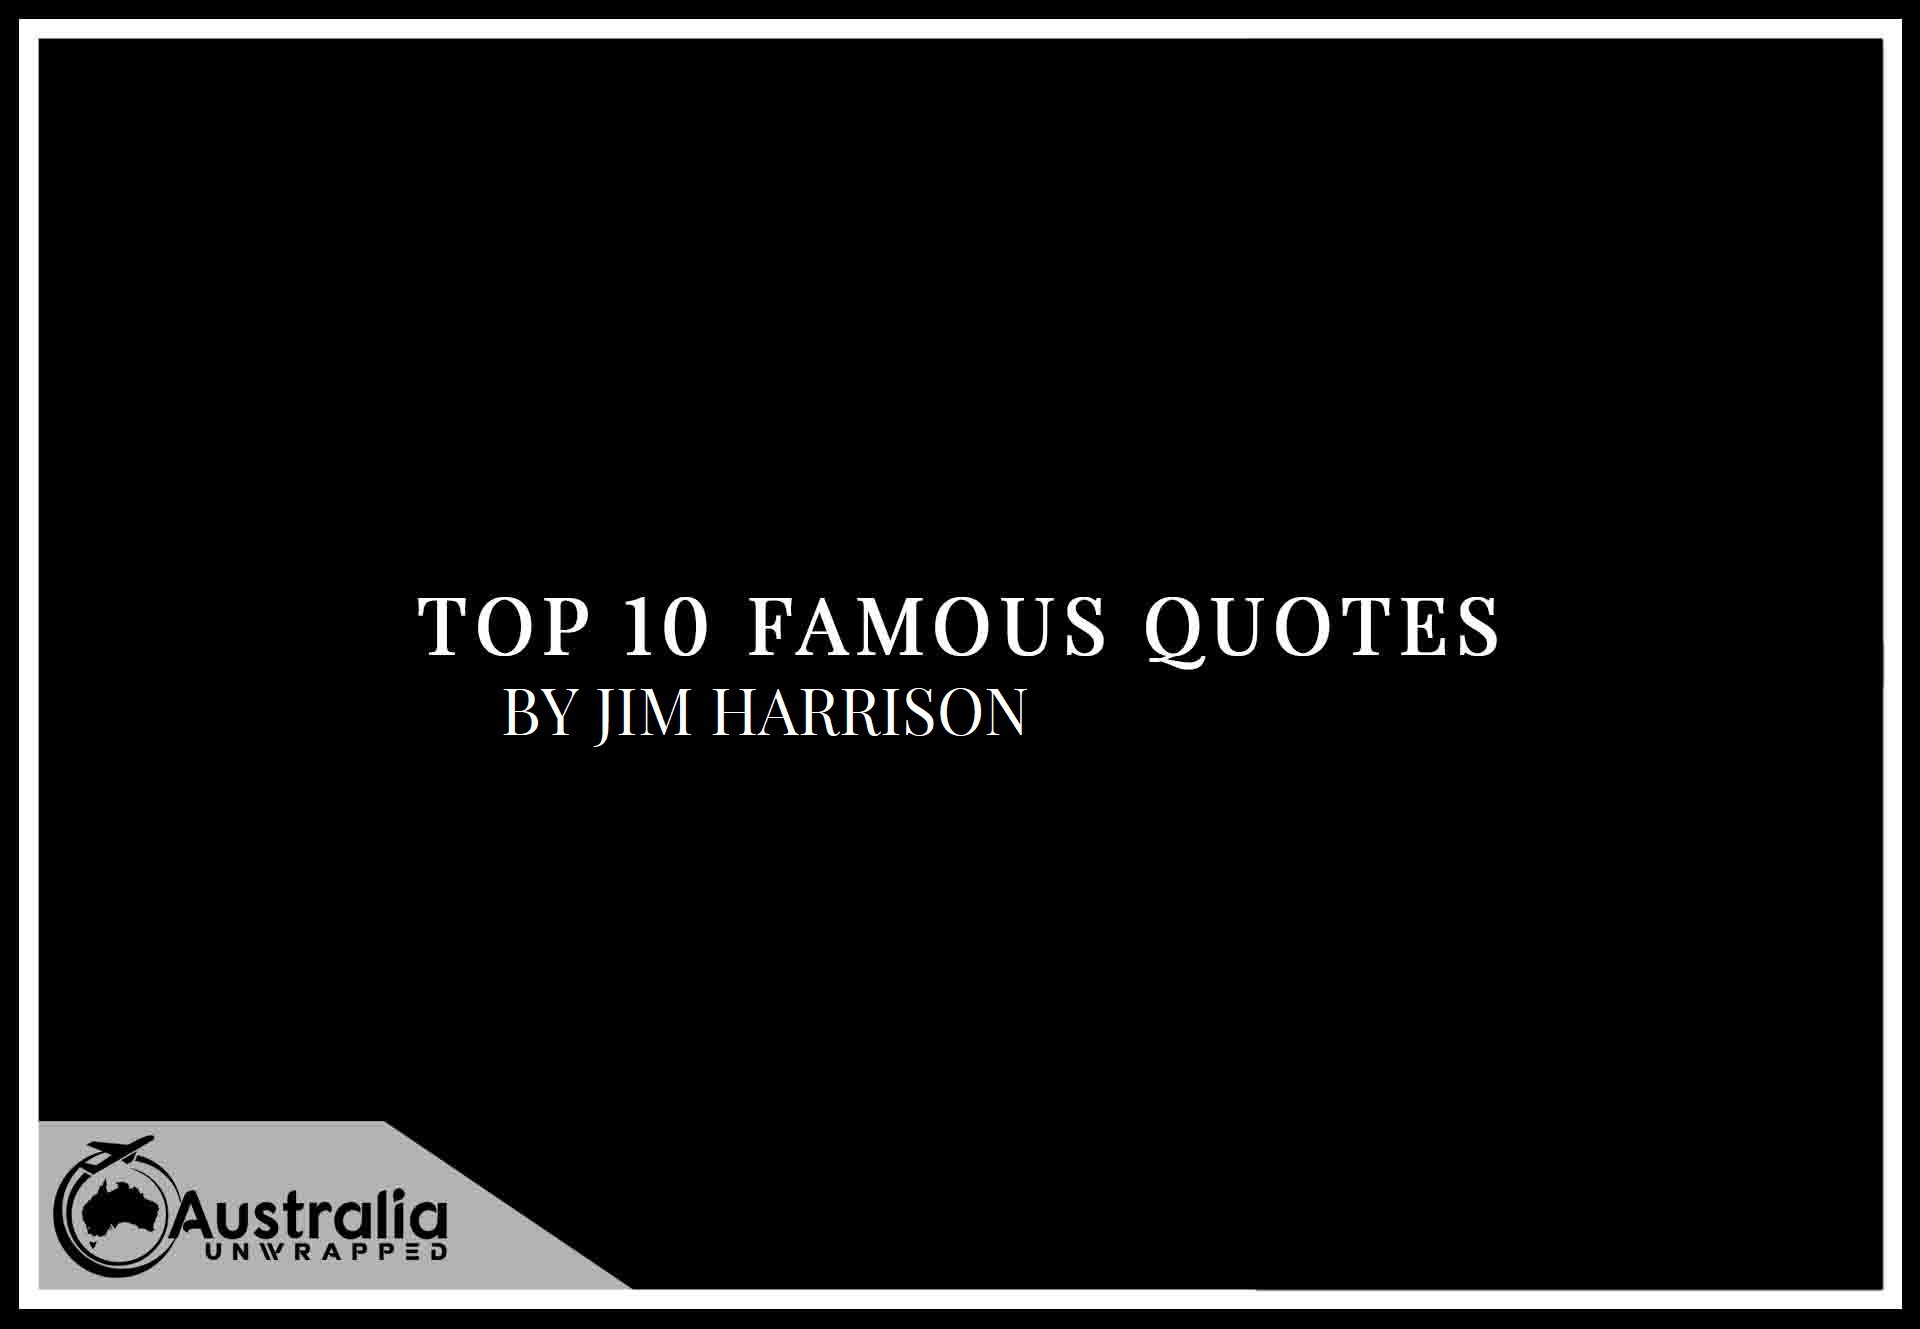 Top 10 Famous Quotes by Author Jim Harrison